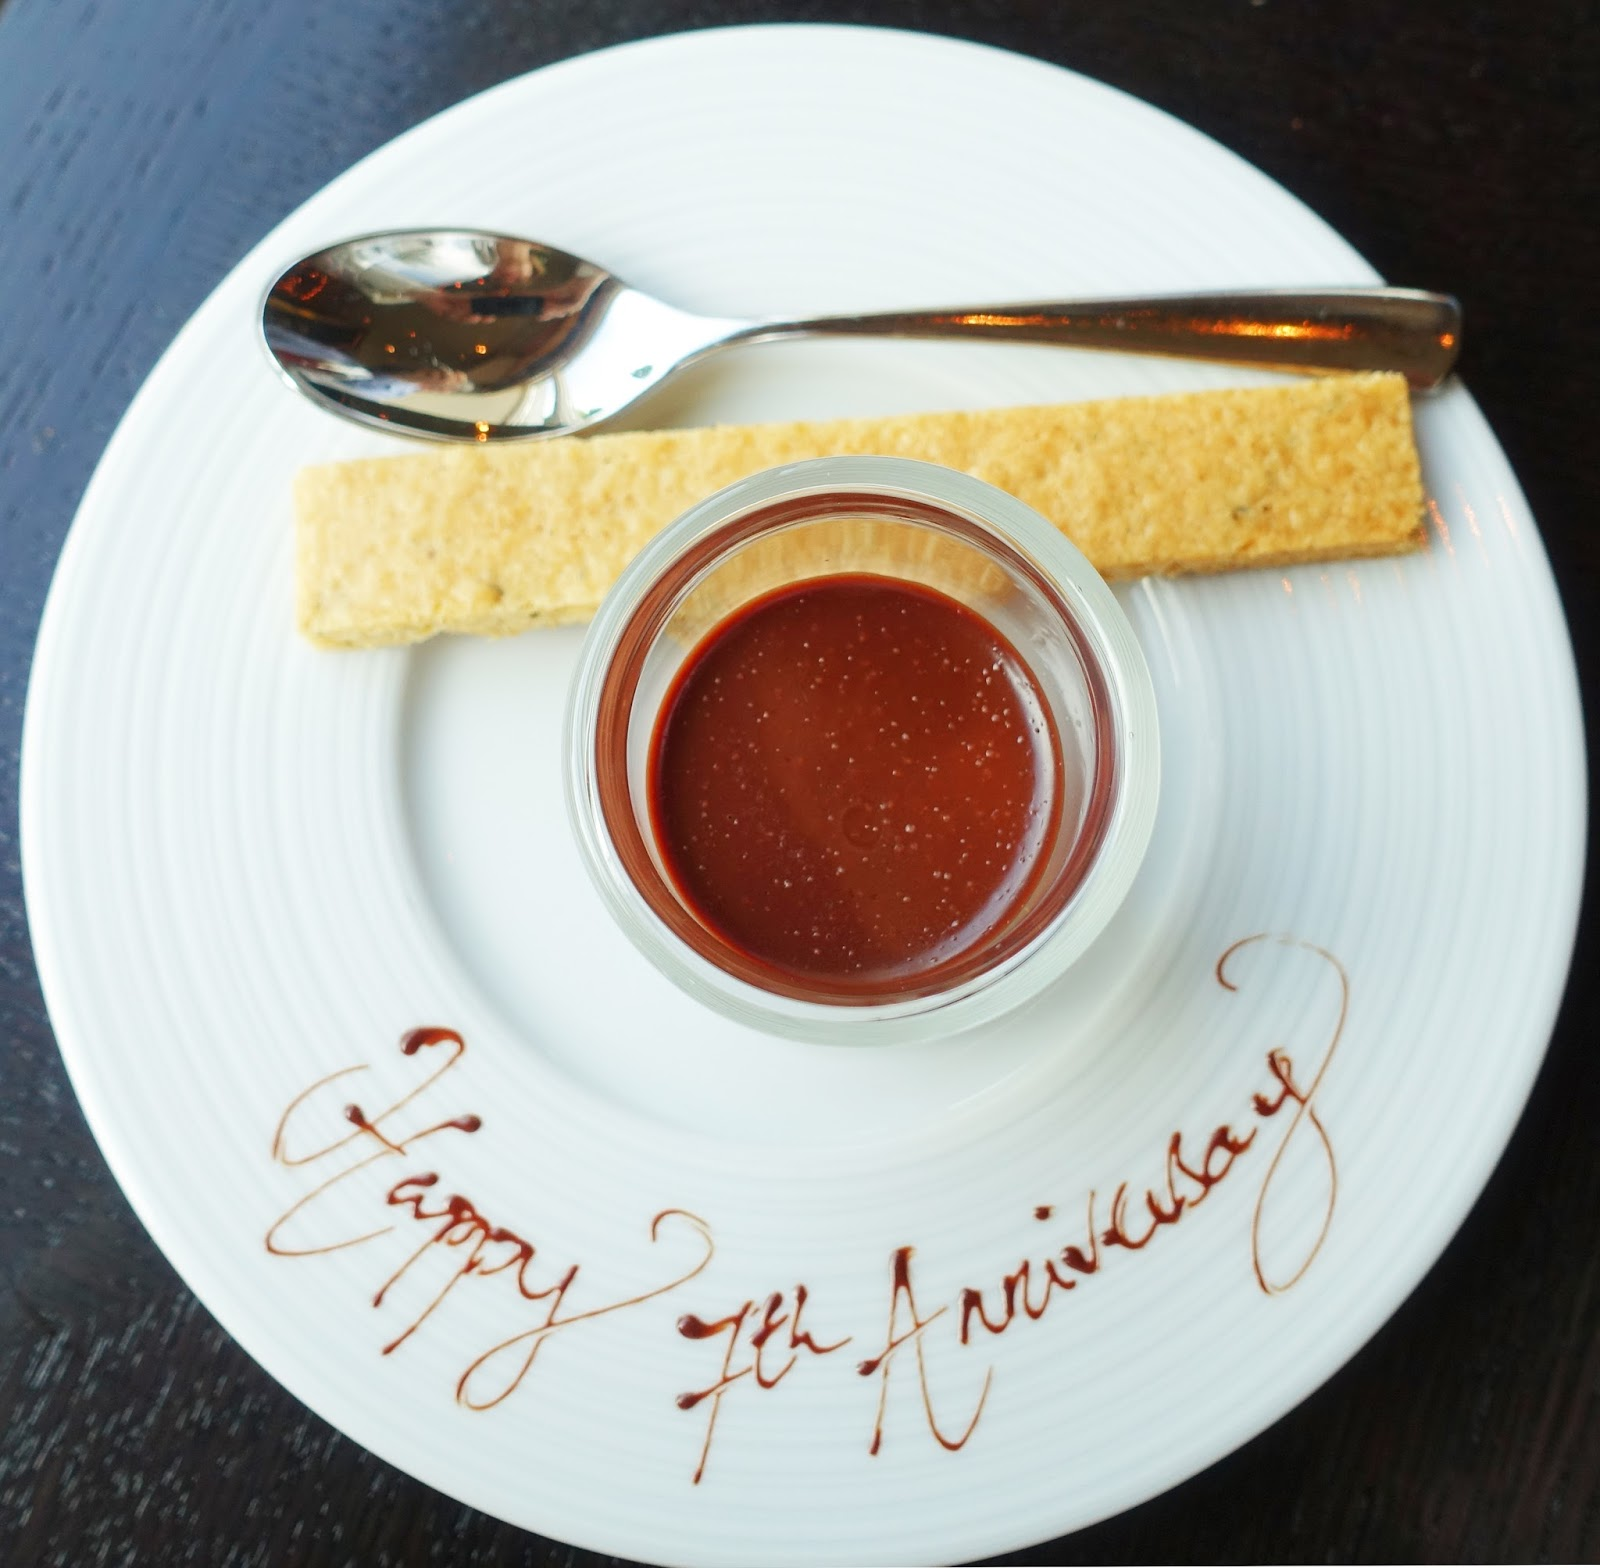 """A nice touch as plates are decorated with """"happy anniversary"""" at Dinner by Heston"""